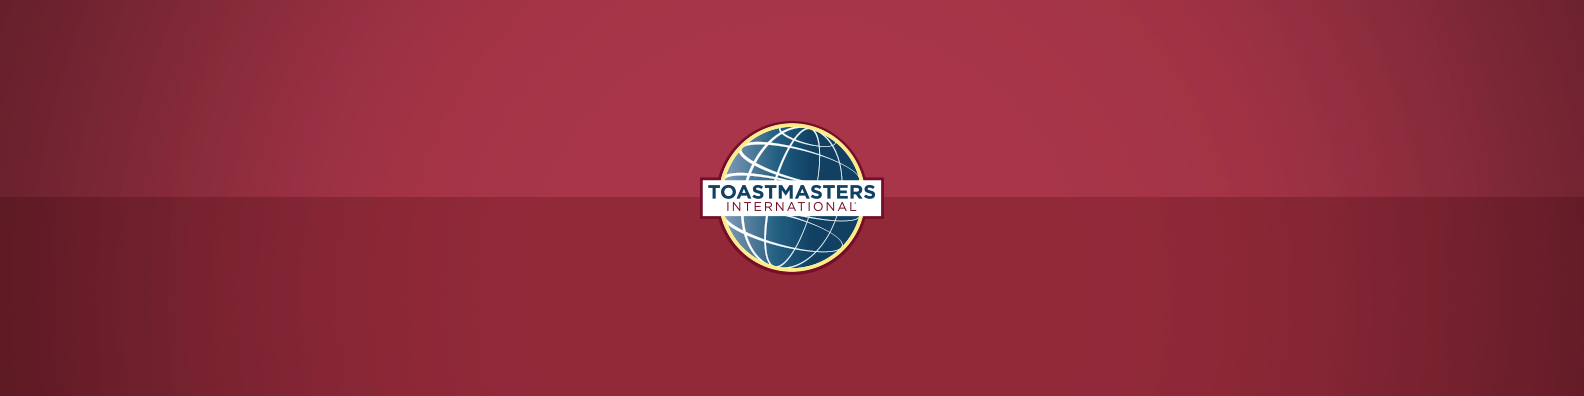 Toastmasters International Logo And Design Elements